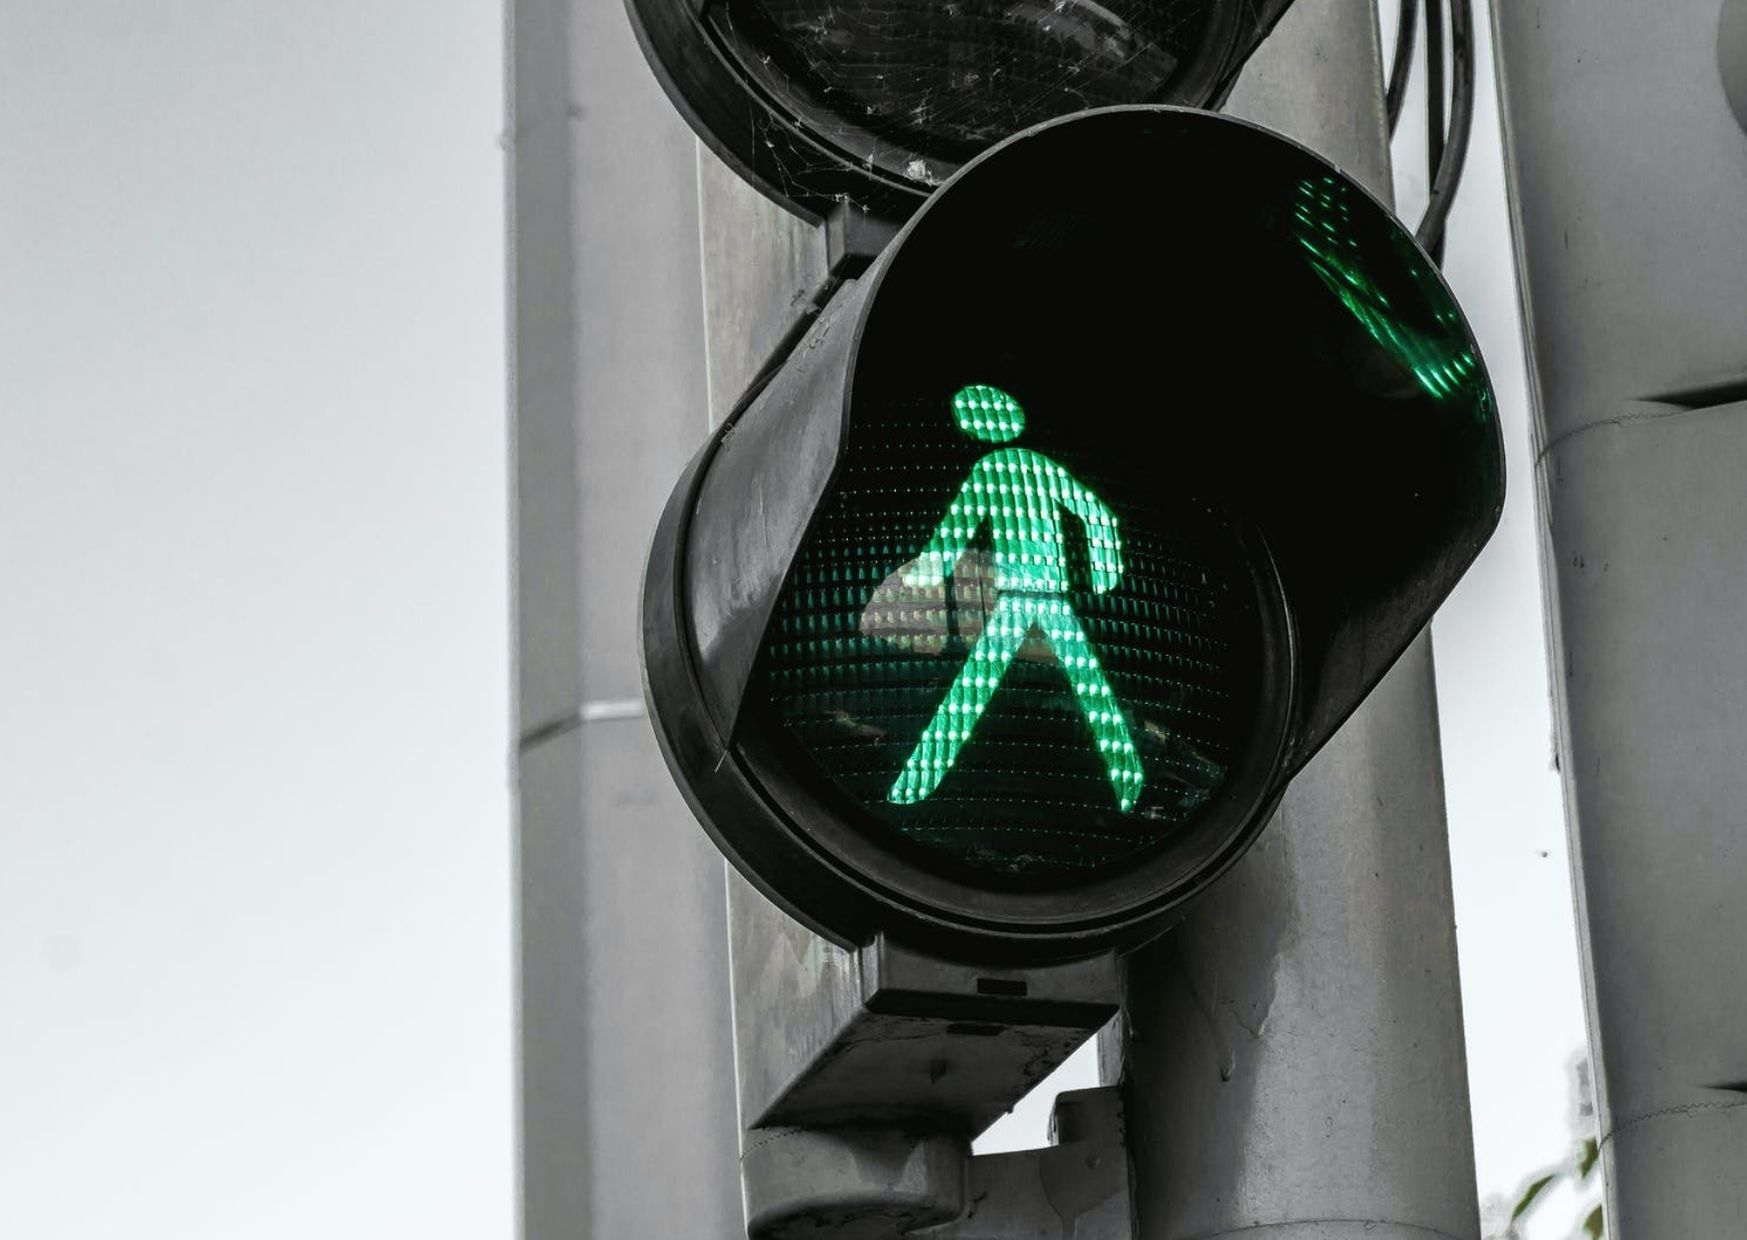 Parliament calls for Strong European Leadership on Road Safety – including urban areas